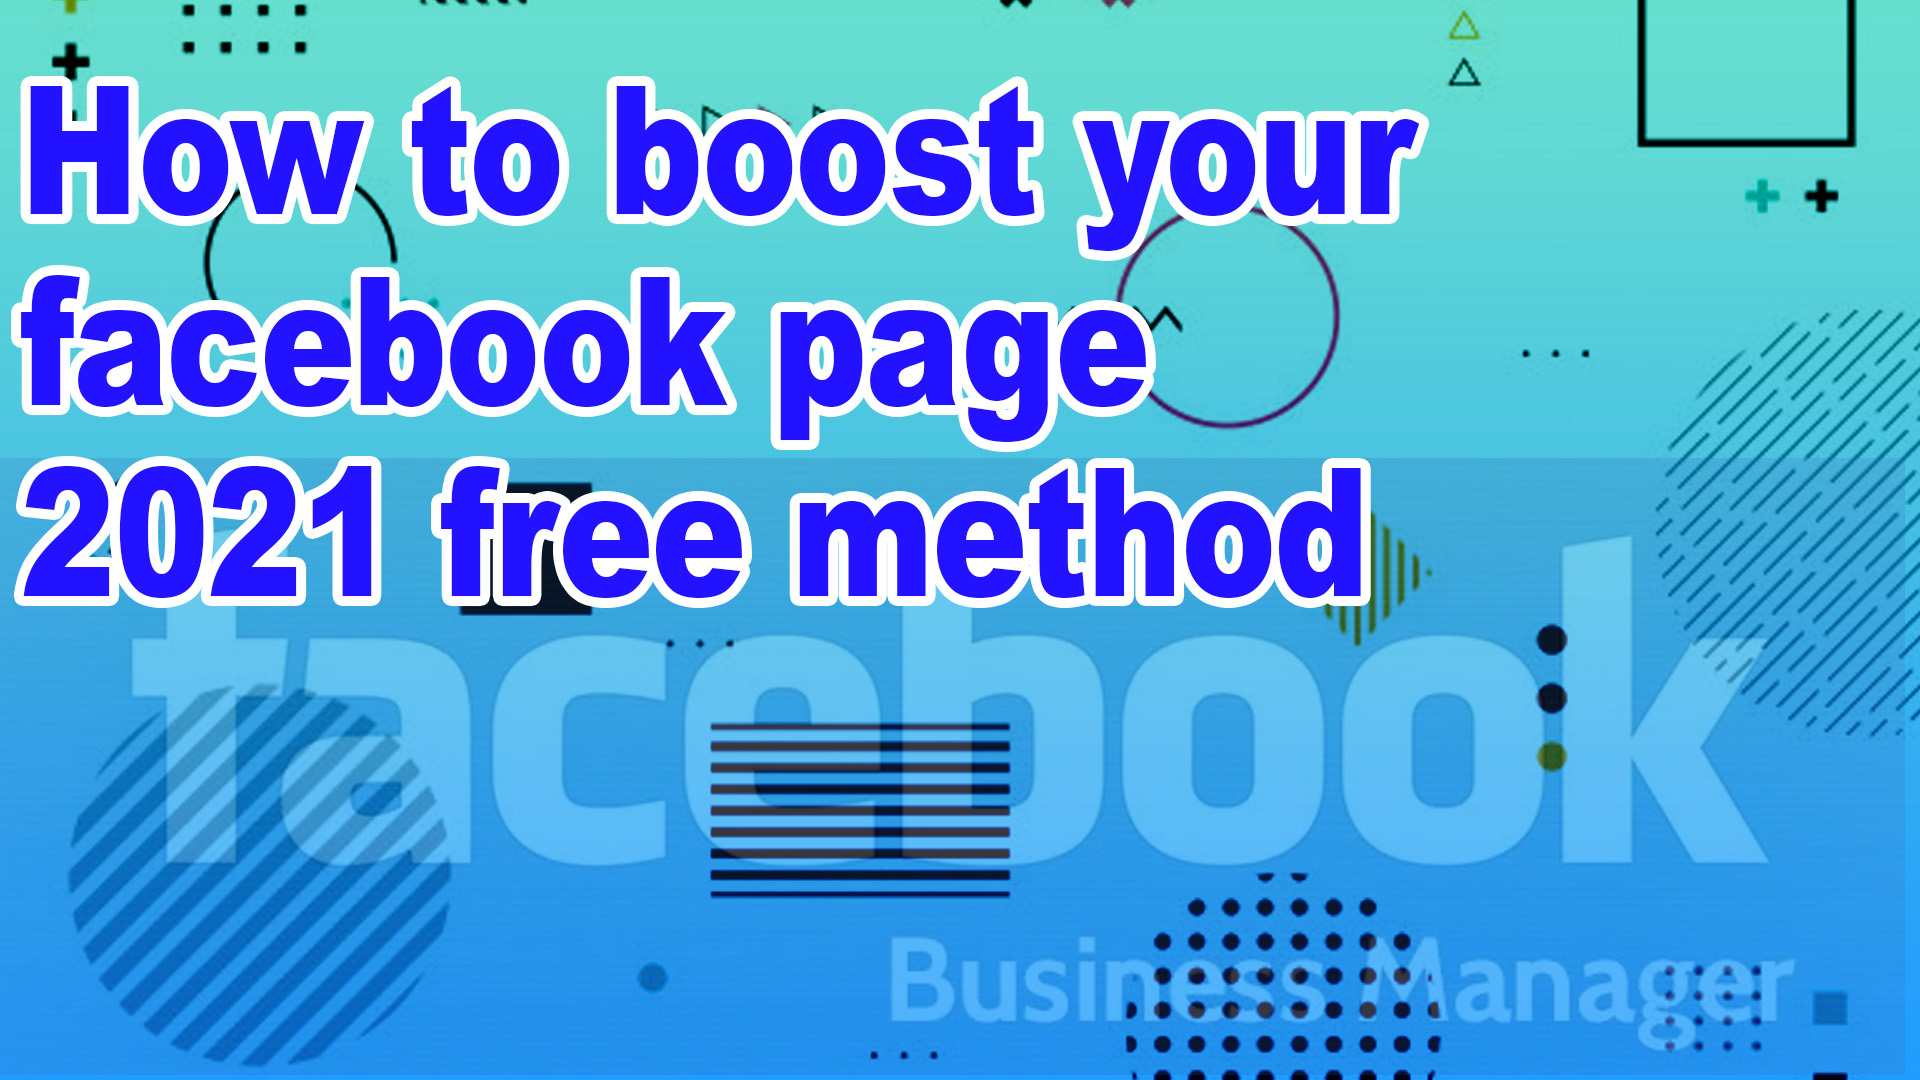 How to Free boost your Facebook Page 2021